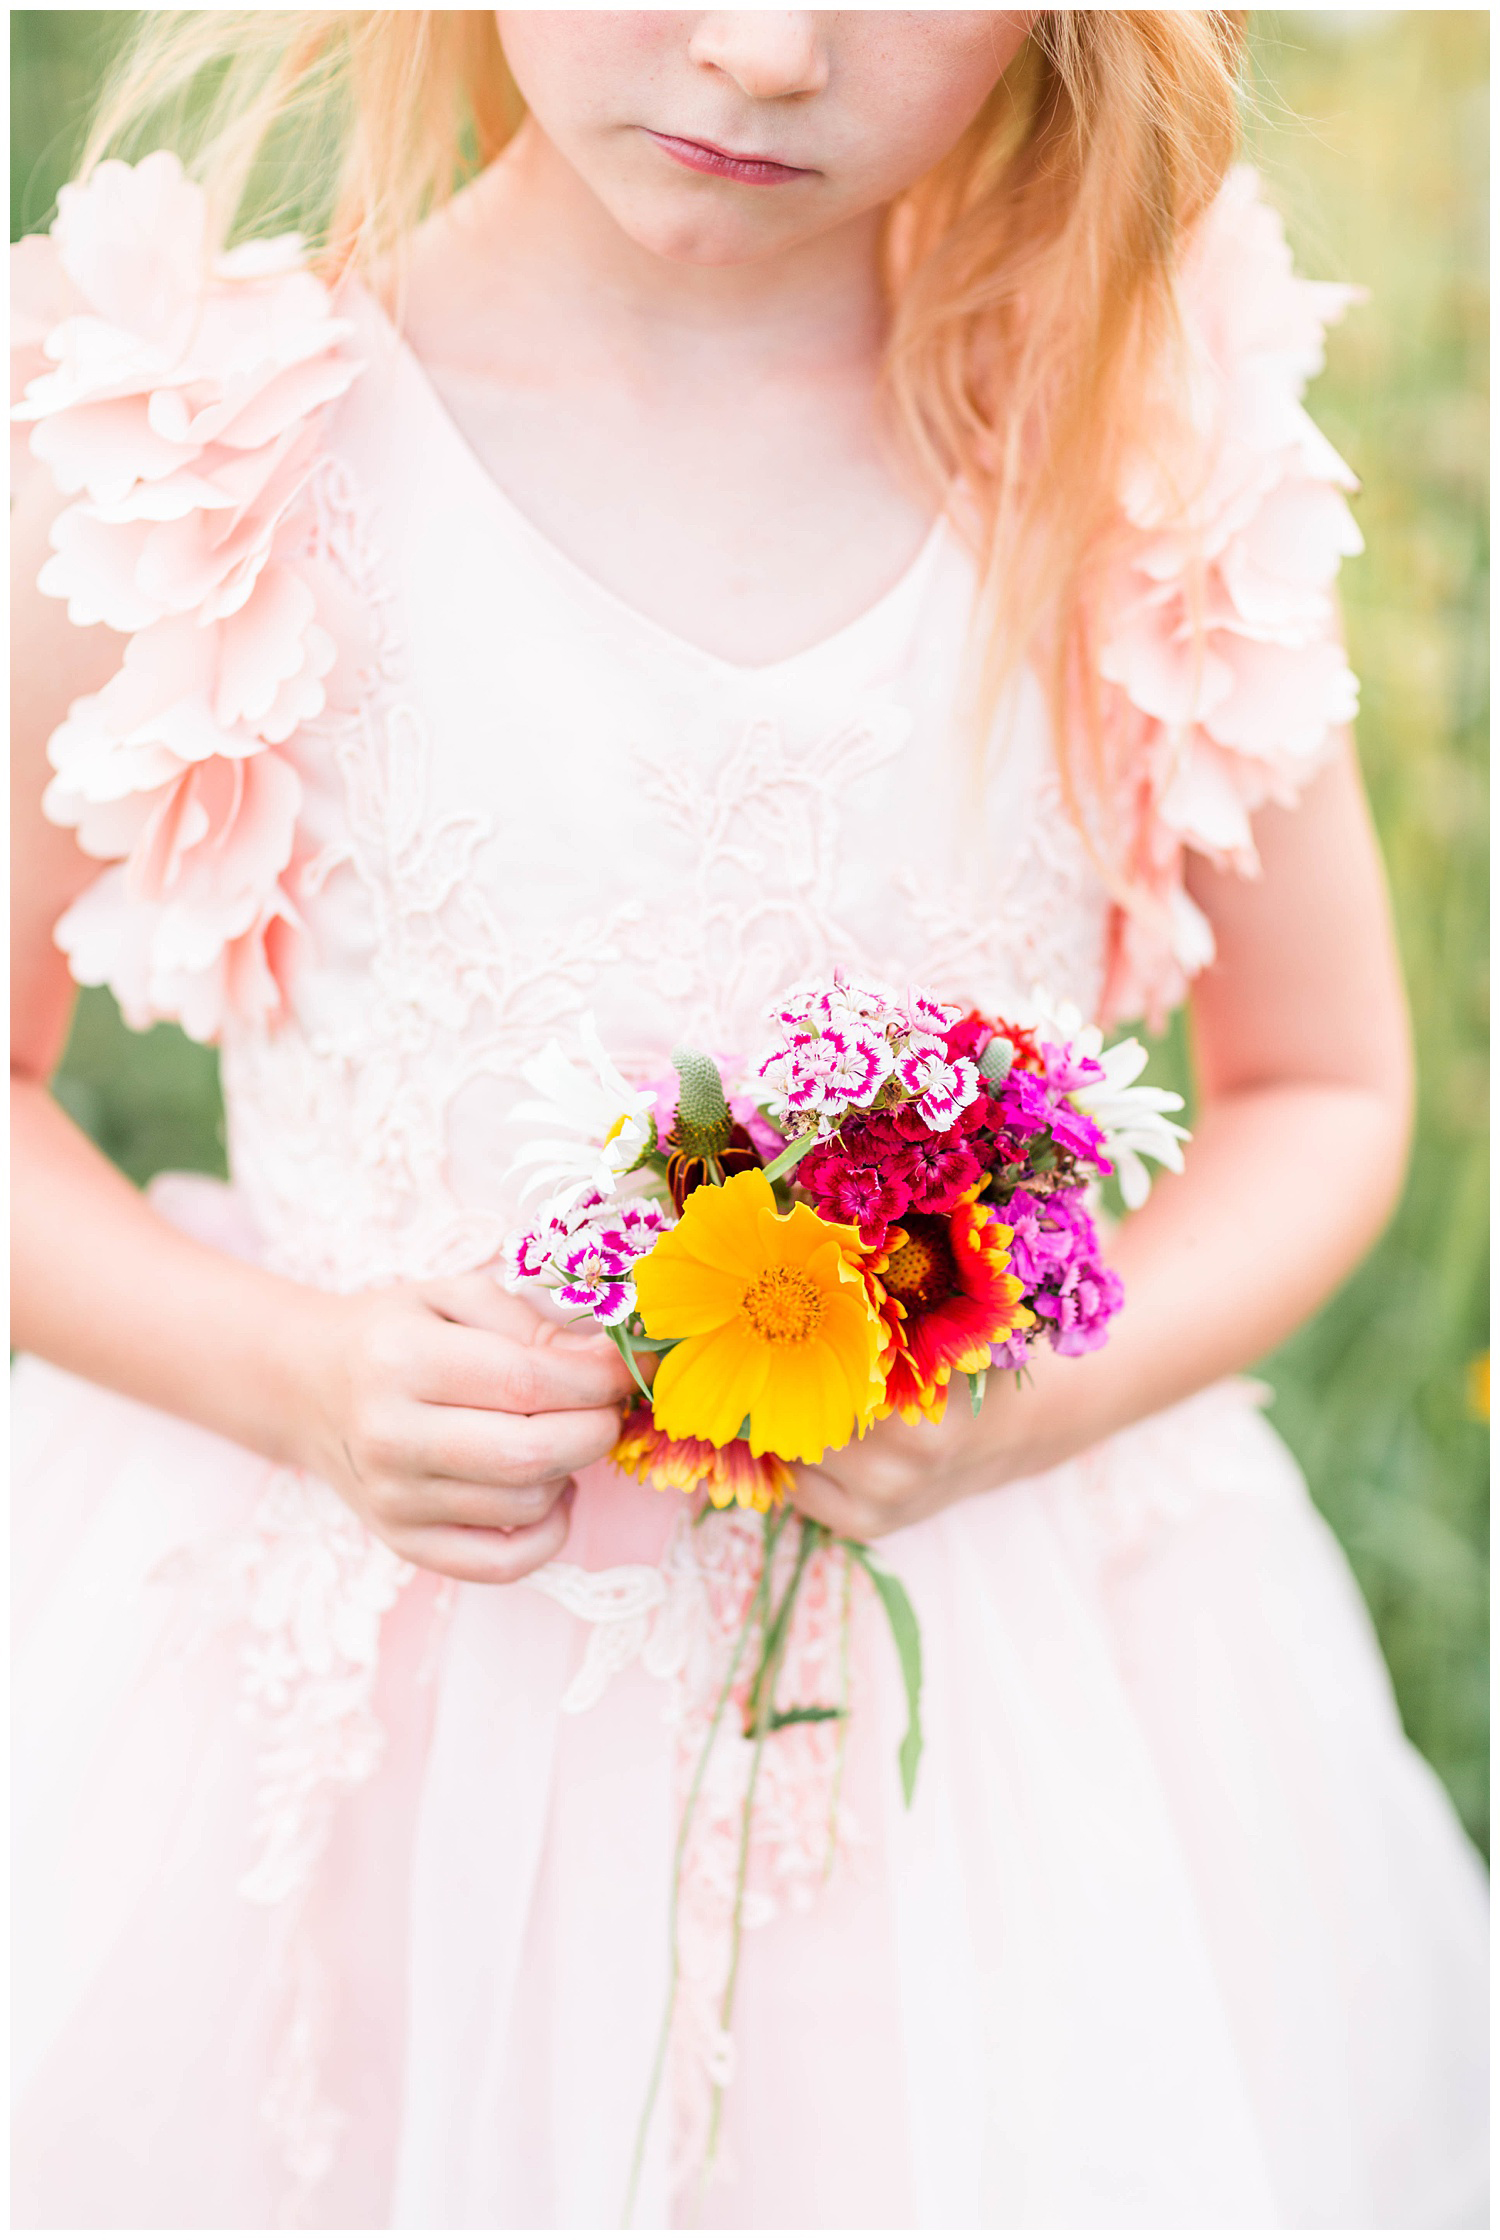 Little Liella stands in a field of wild flowers holding a bouquet wearing tutu du monde couture dress by Trish Scully | CB Studio